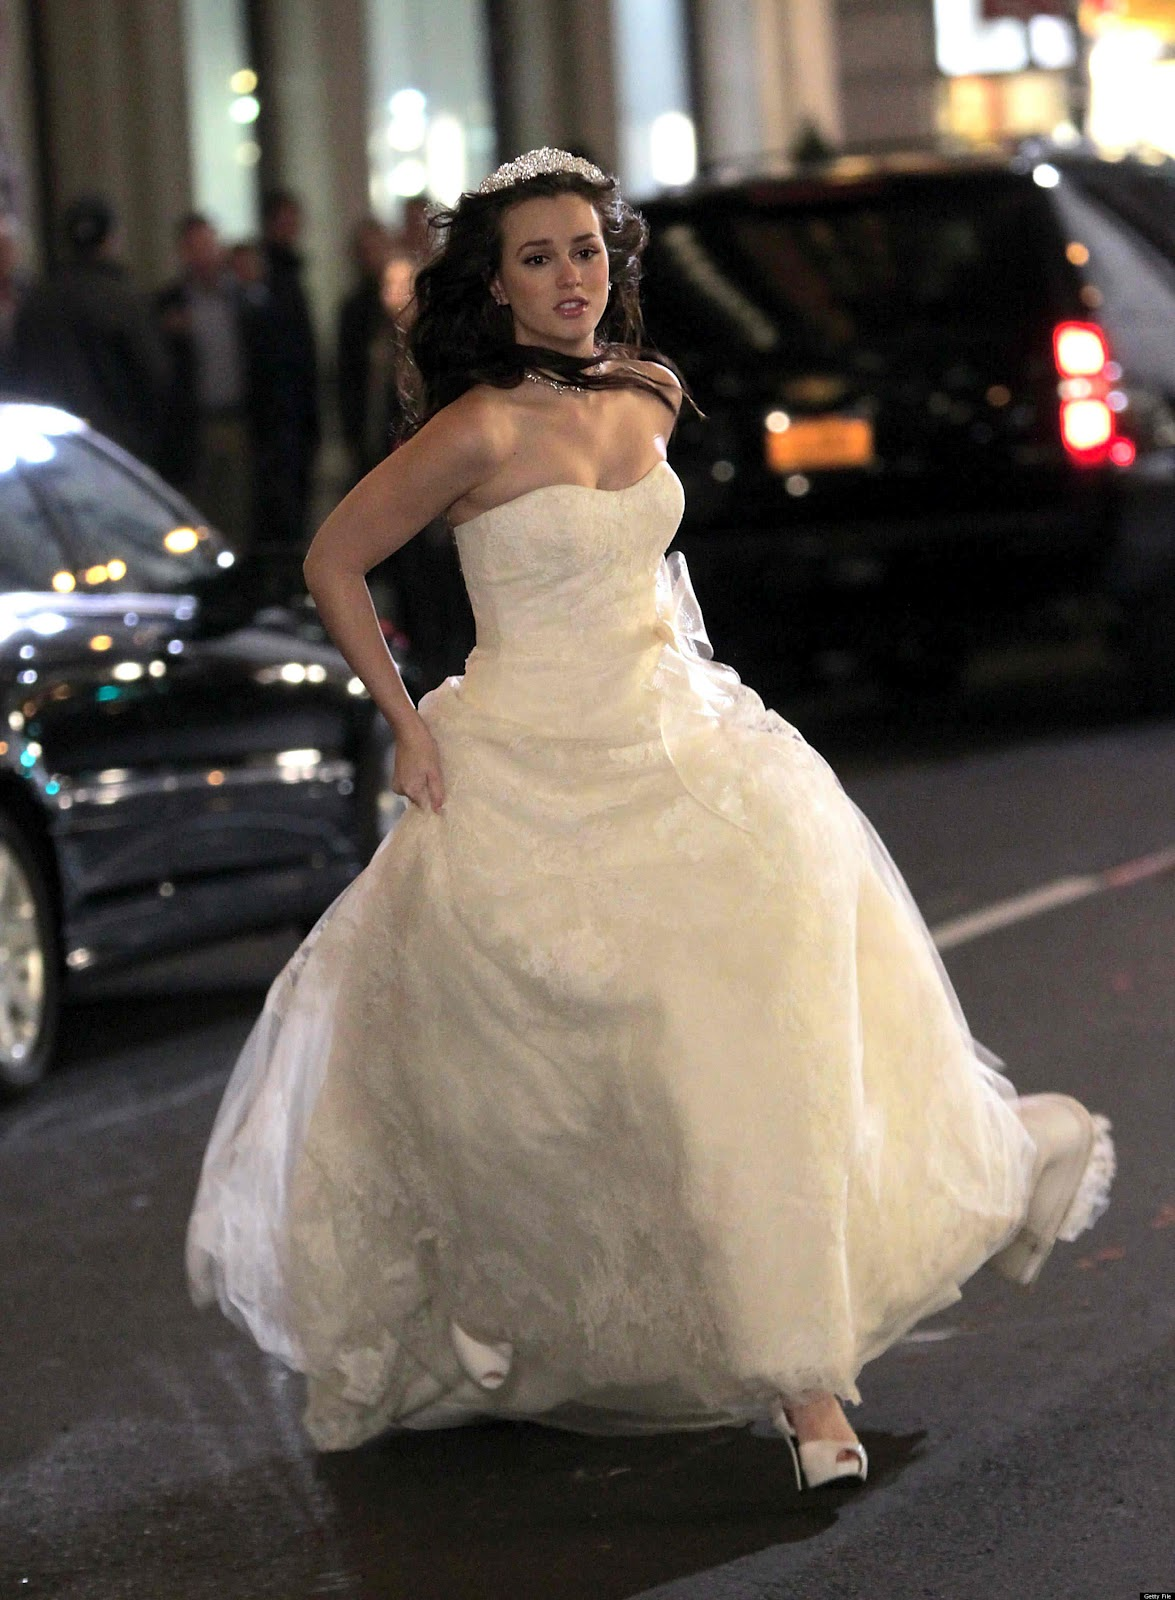 Blair Was Running In The Streets And Dress Just Look So Lovely Here Is Another Photo Of To See How Gorgeous